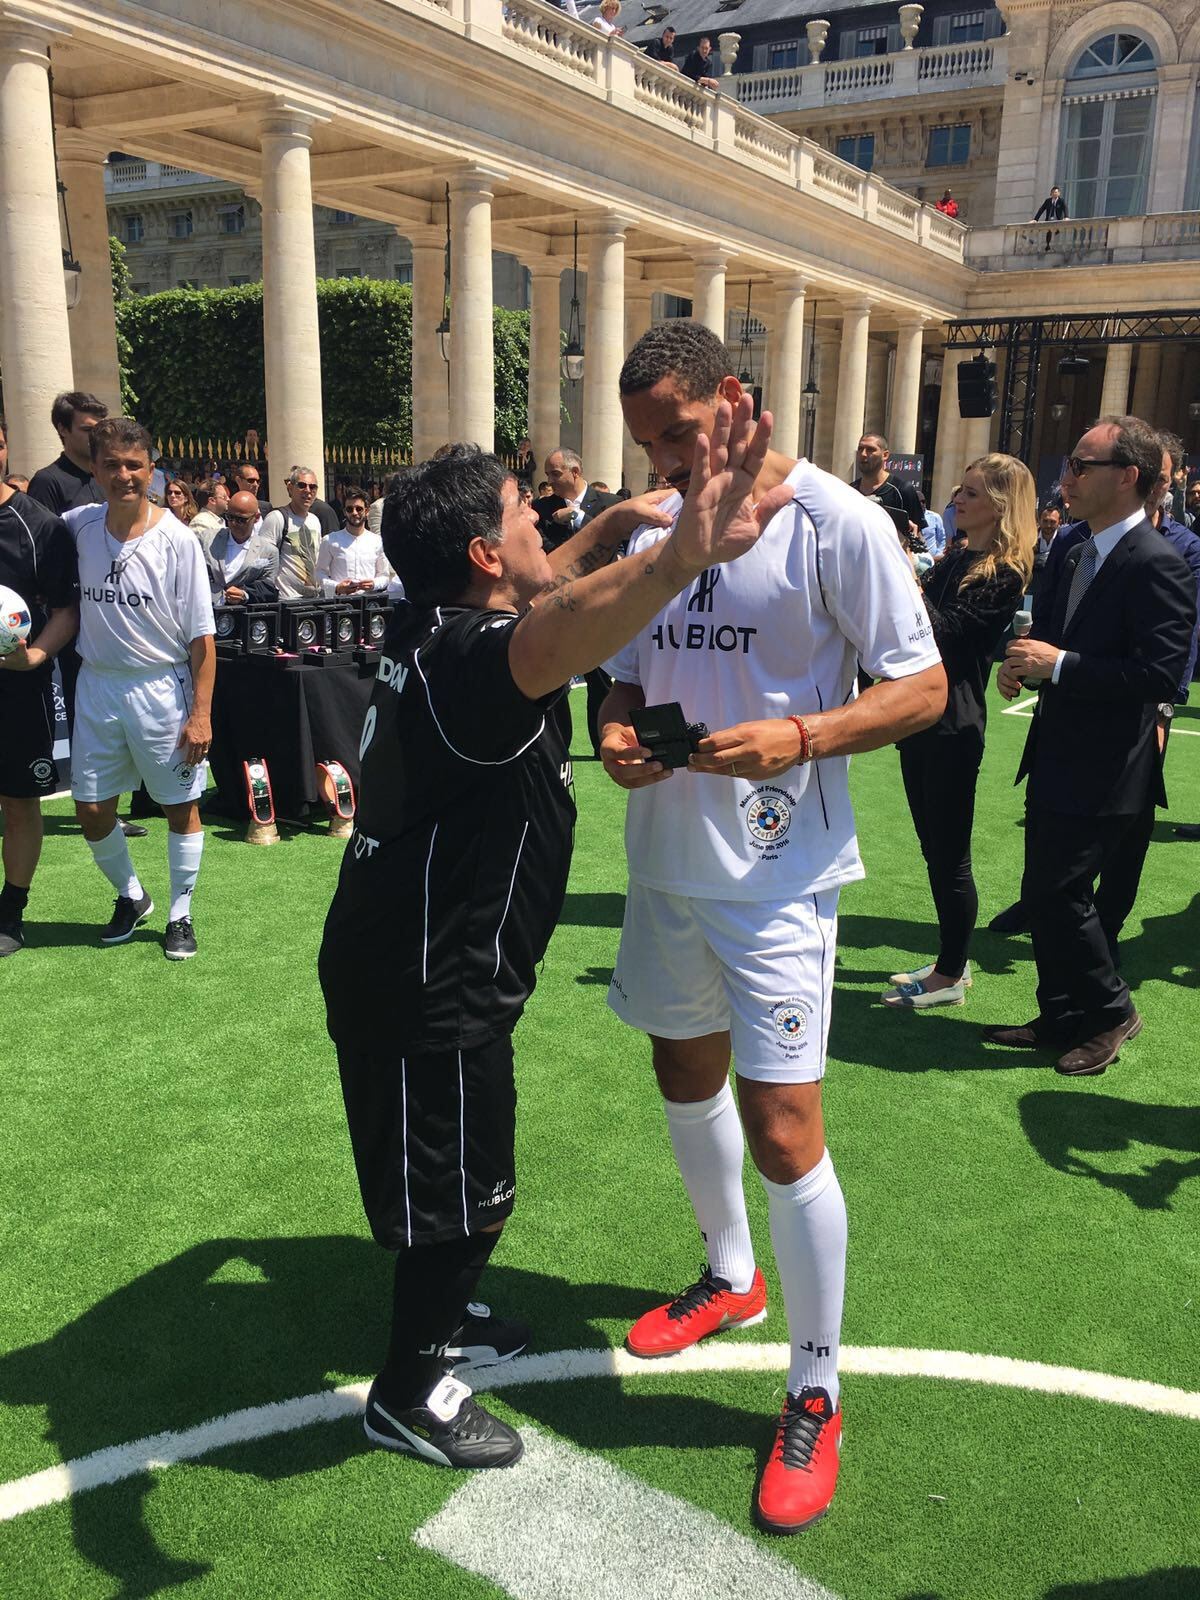 The Legend discussing #Eng chances at #Euro2016 yesterday!! #Maradona https://t.co/u1Vf1HPtx3